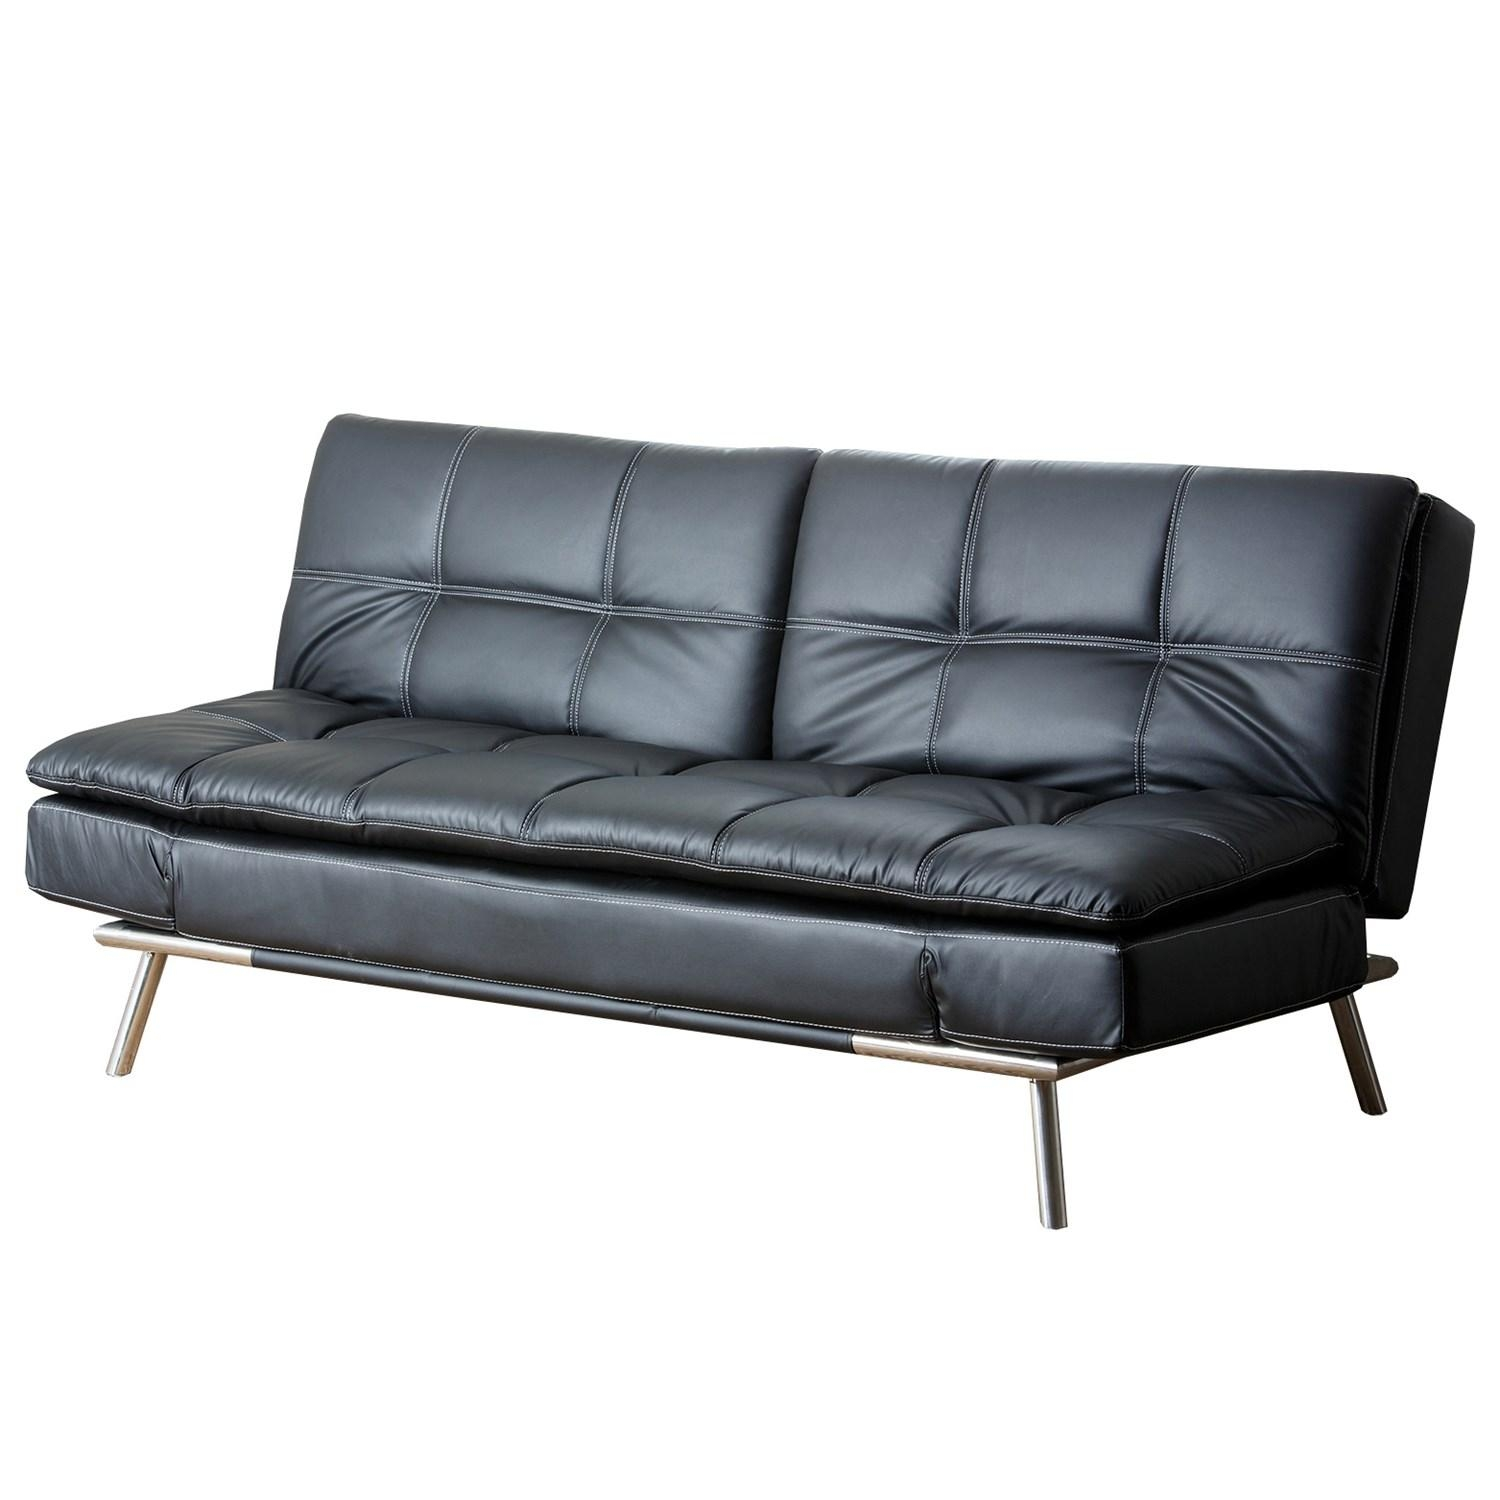 Abbyson Living Yg F118 Blk Marquette Leather Euro Lounger Sofa Within Euro Loungers (View 13 of 20)